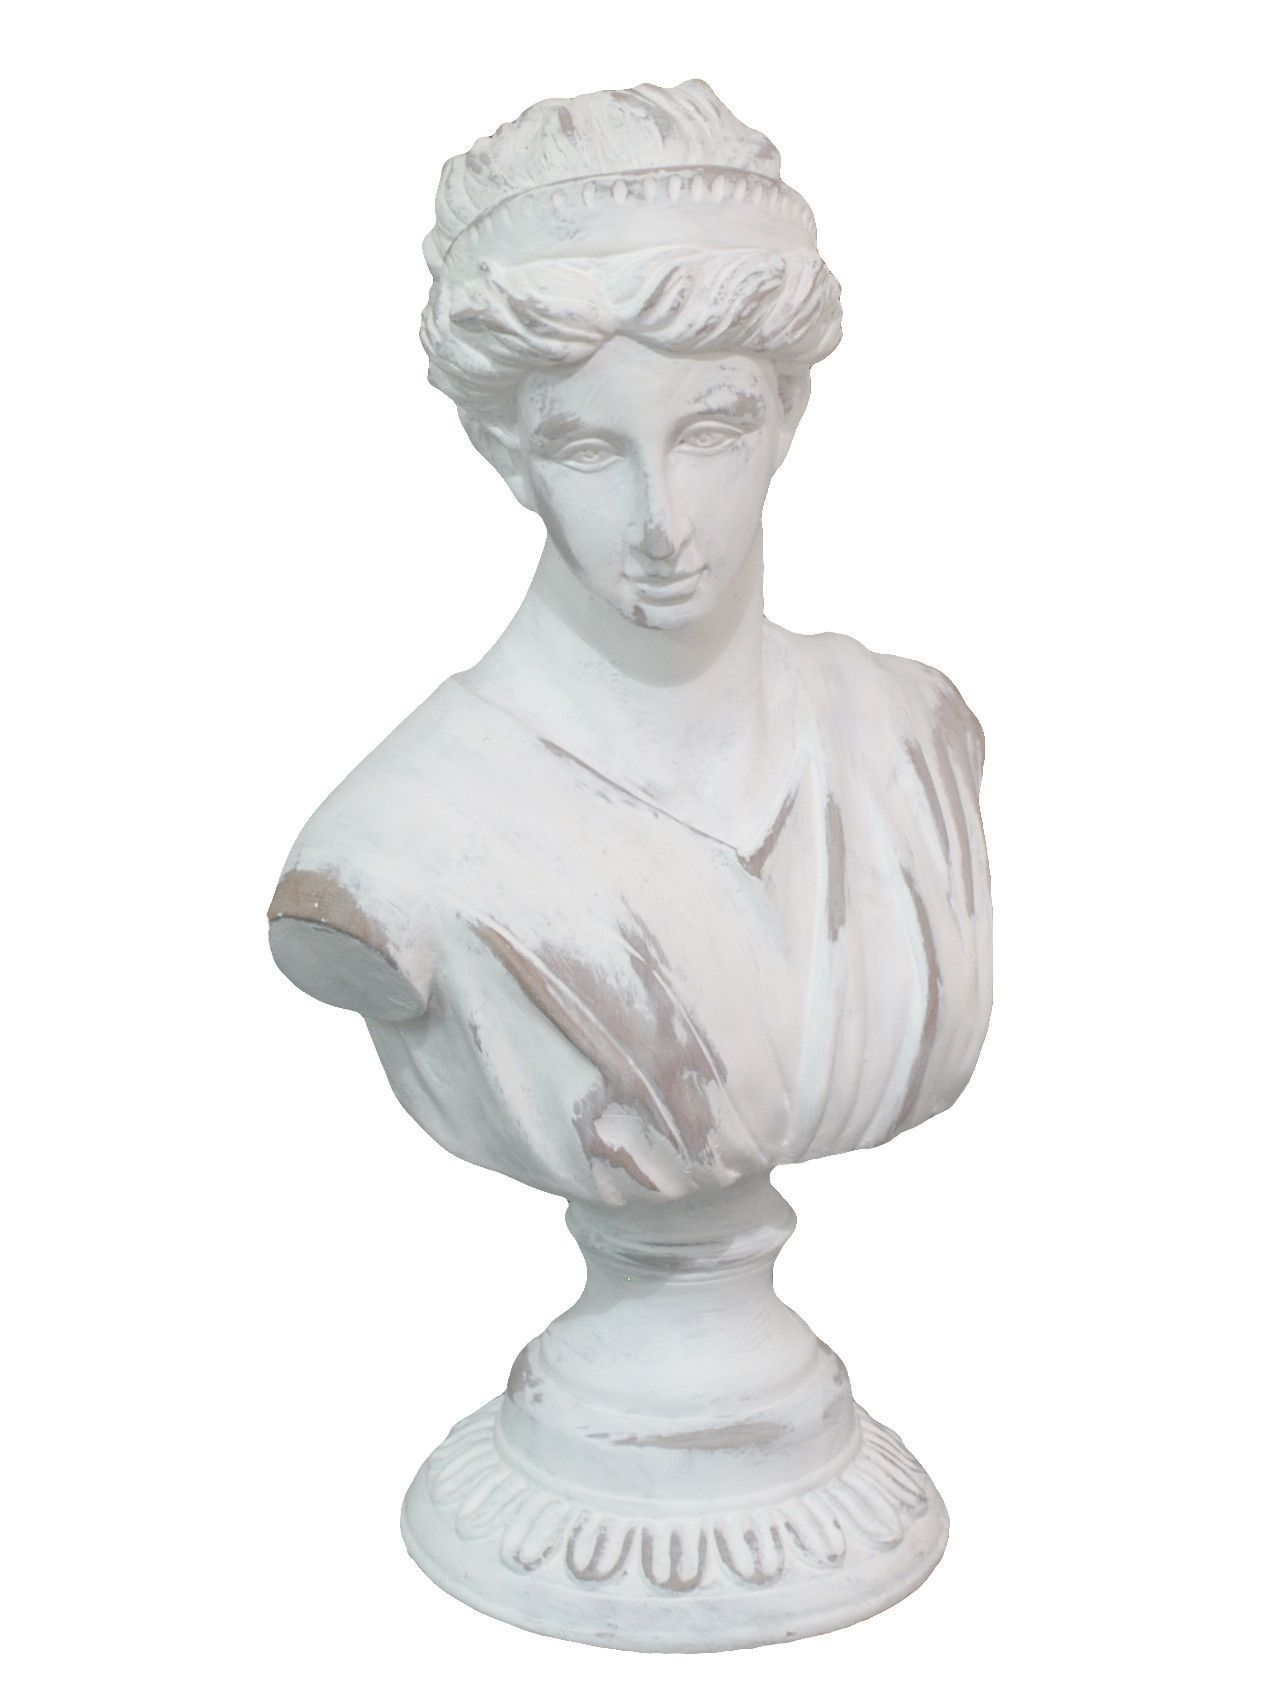 Superb Resin Bust Statue Decorating Your Home Decor And Stand For